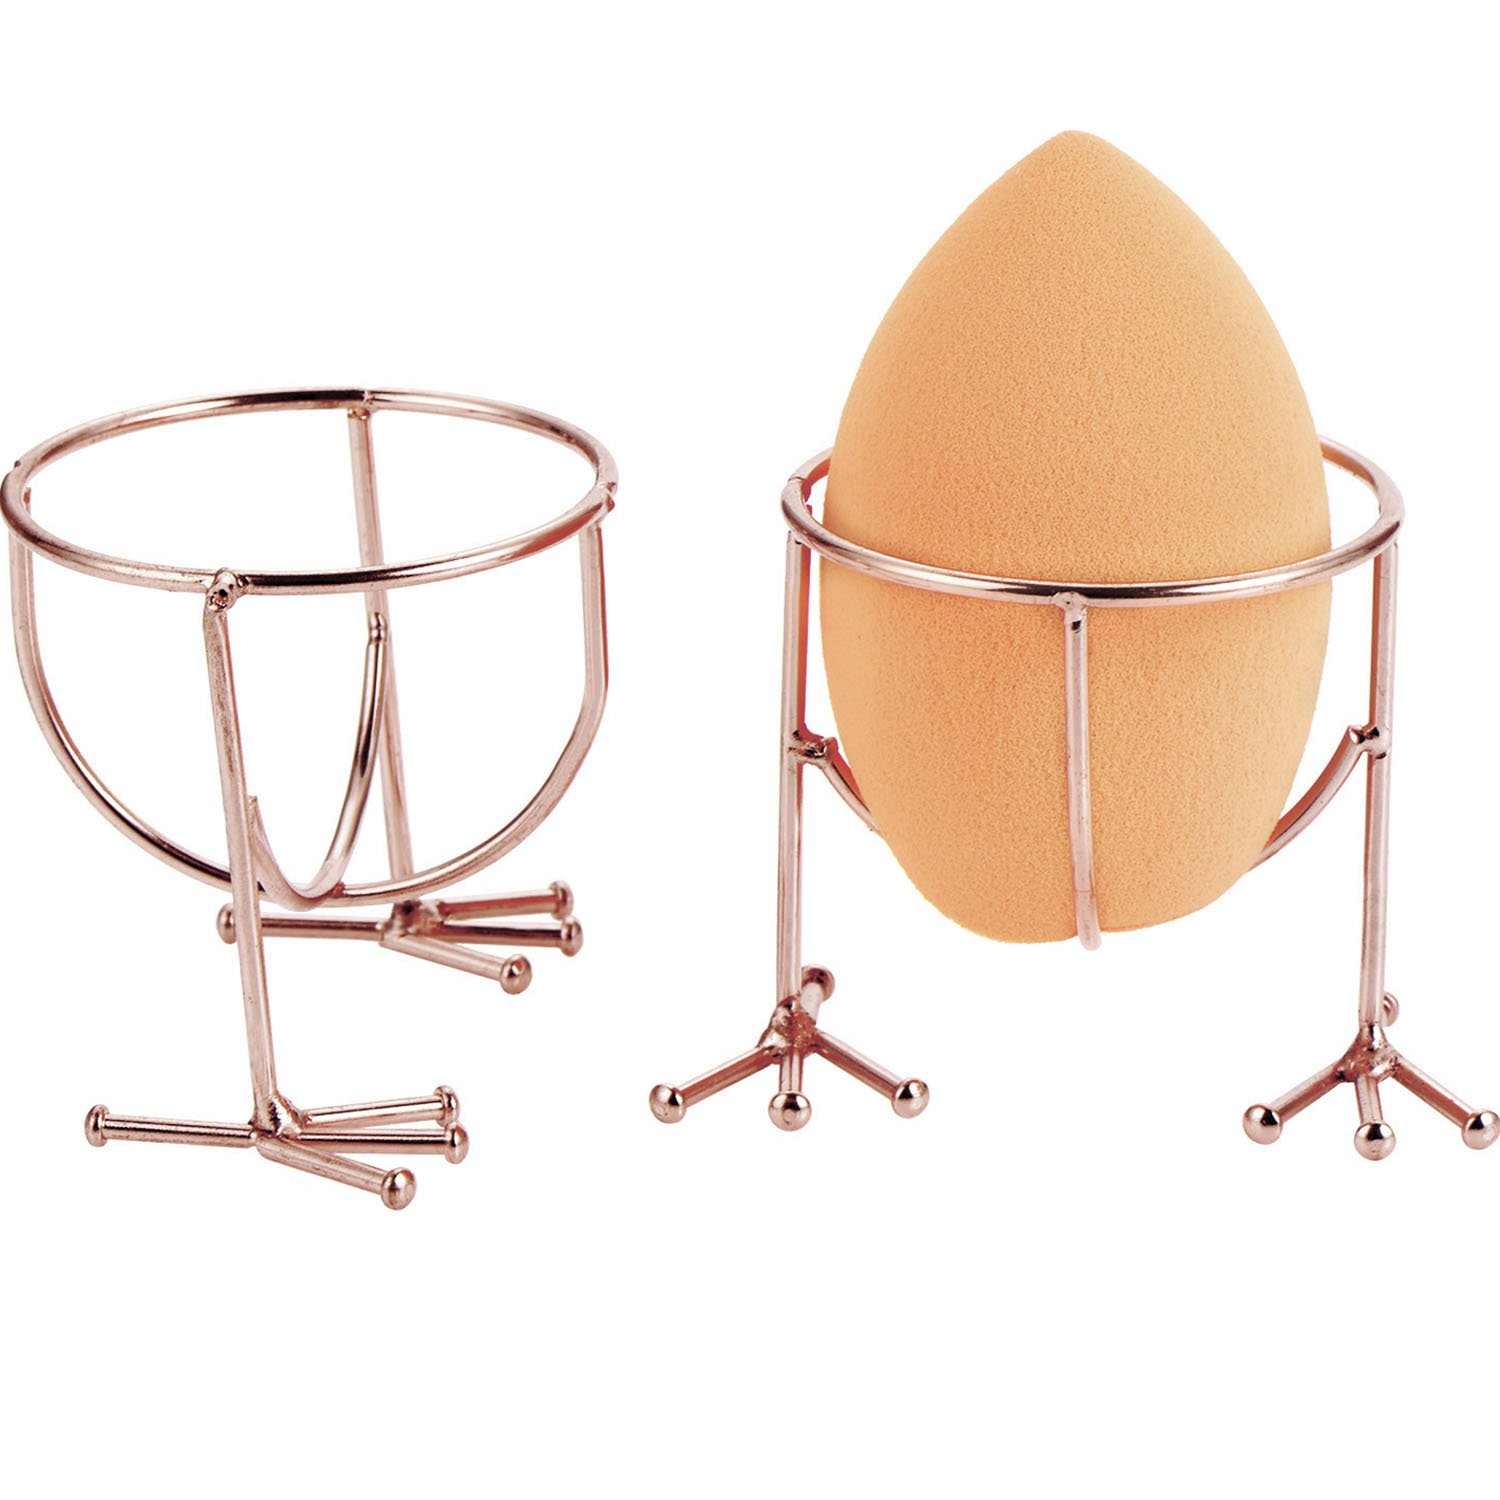 Hestya Makeup Sponge Holder Egg Sponge Stand Puff Display Stand Dryer Rack Makeup Sponge Support (Sponge is not included), 2 Pieces (Rose Gold)